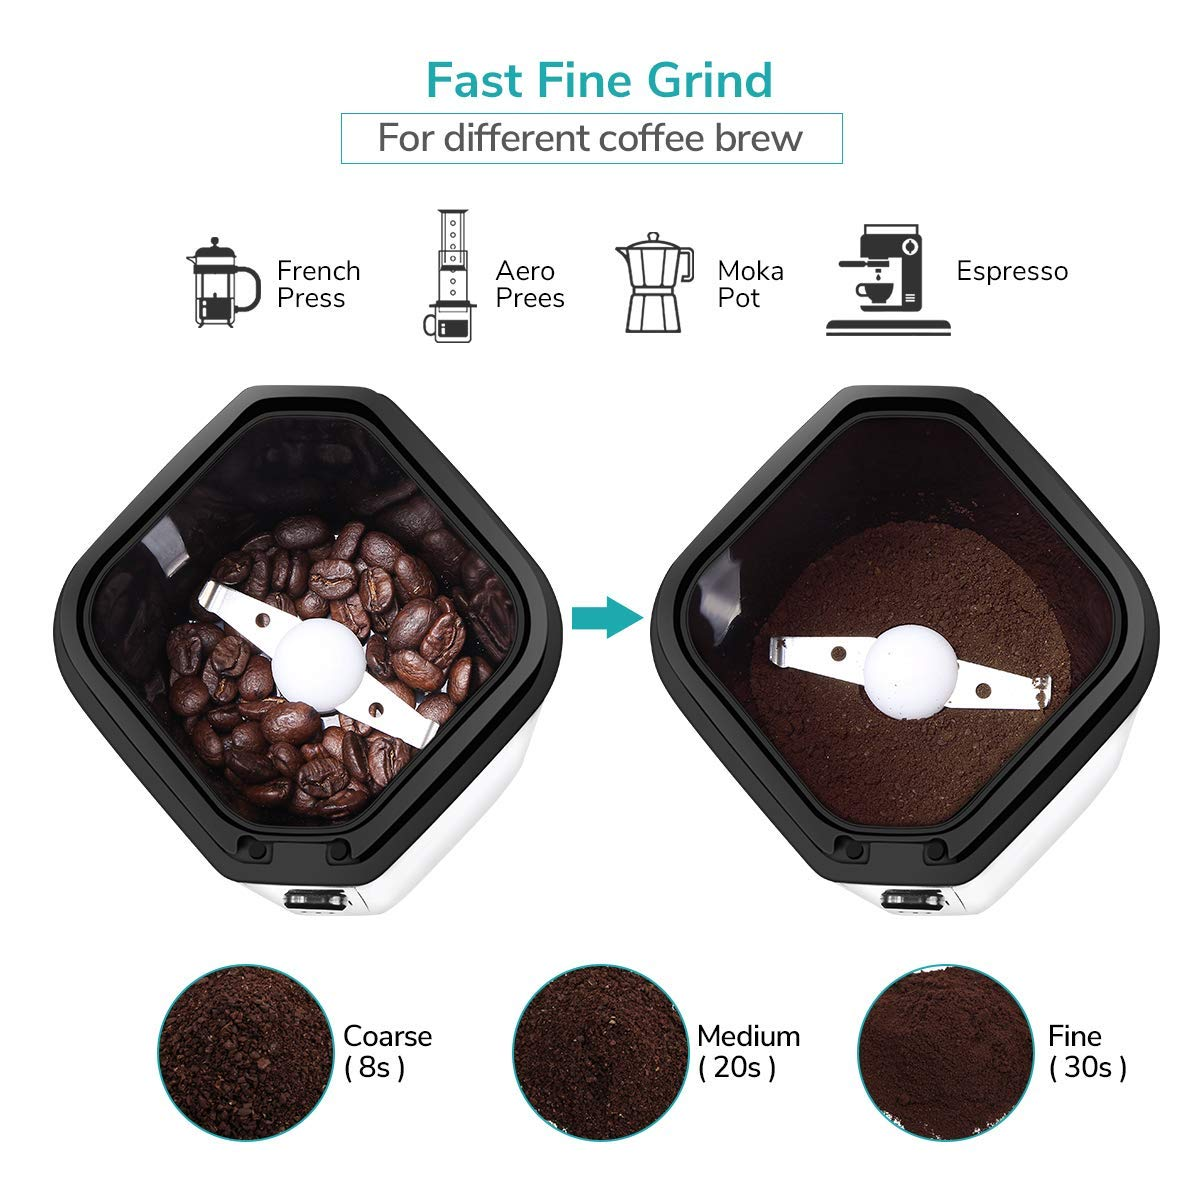 Coffee Bean Spice Grinder Electric – Stainless Steel Blade Grinds Coffee Beans, Spices, Nuts and Grains, 150 W Fast Fine Grinder with Safe Lids Lock, 12 Cups Large Grinding Capacity, Cord Storage